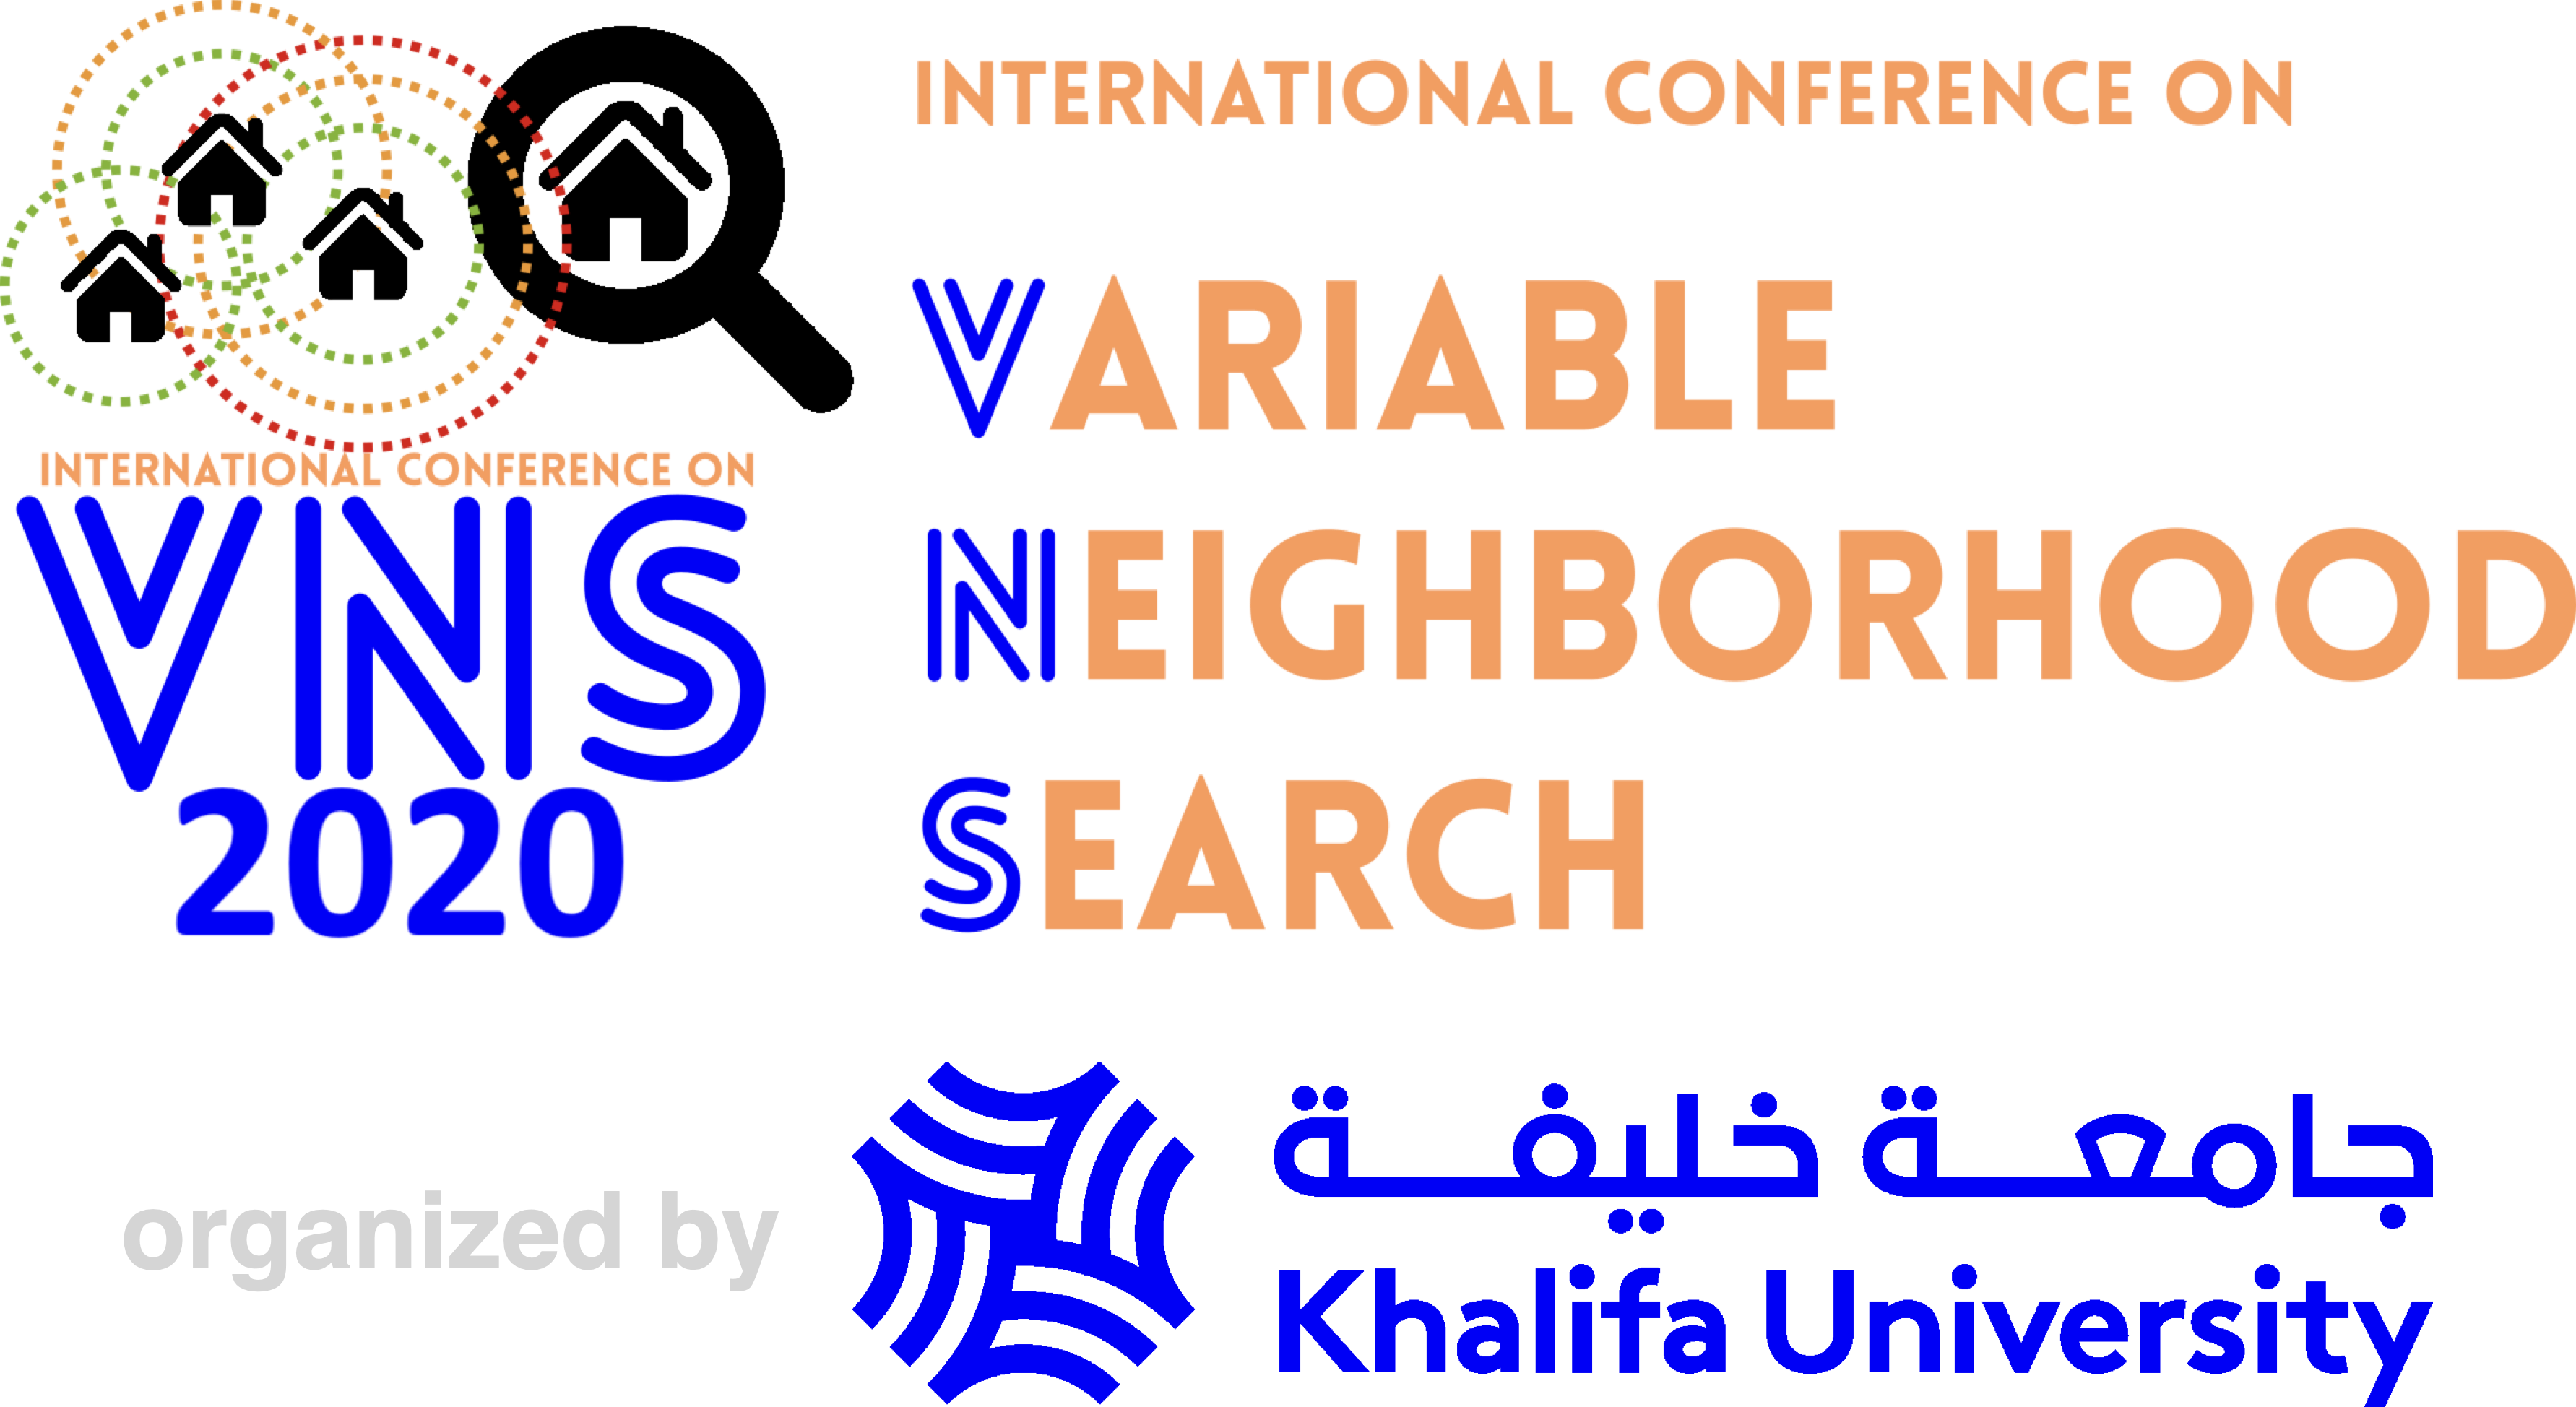 KU Organizing the 8th International Conference on Variable Neighborhood Search